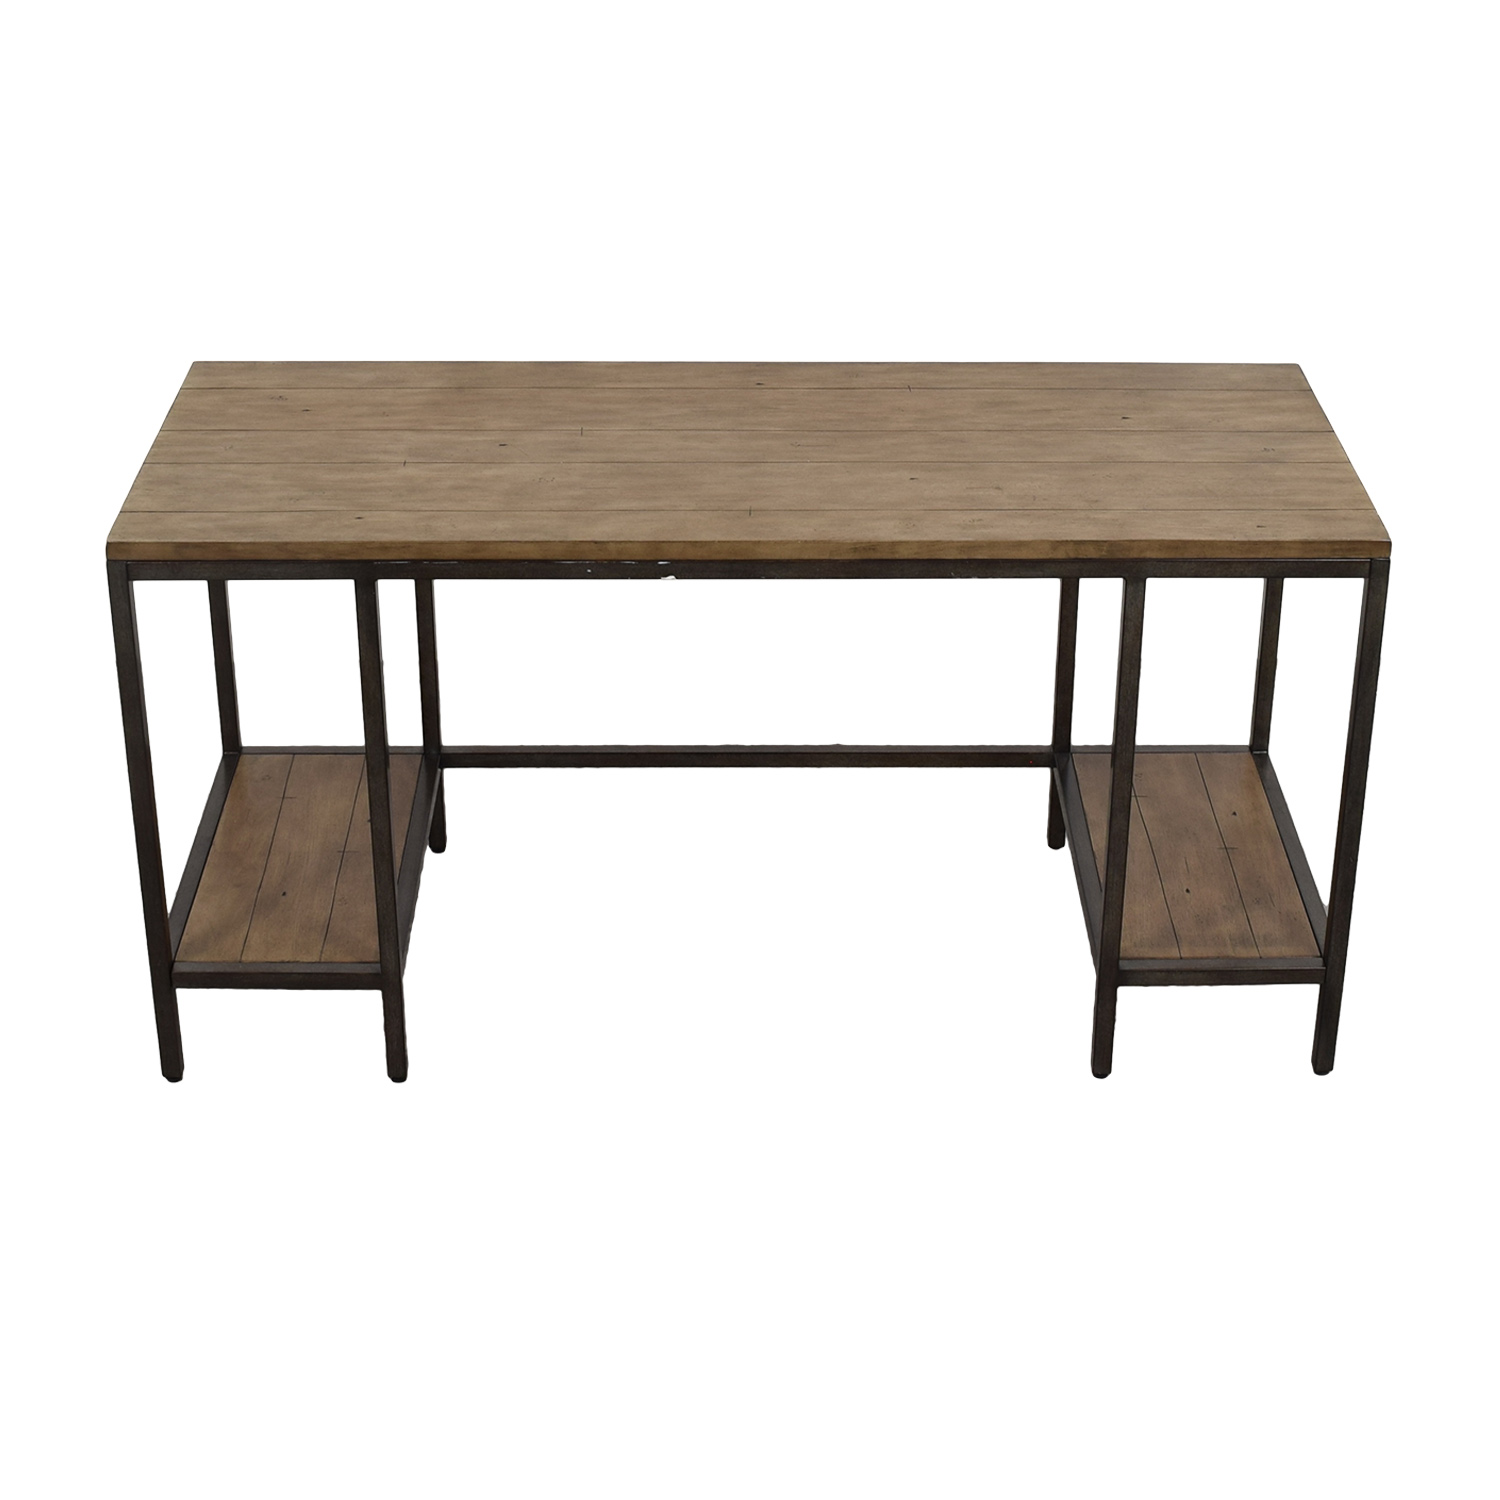 ... Buy Ballard Designs Durham Desk Ballard Designs Tables ...